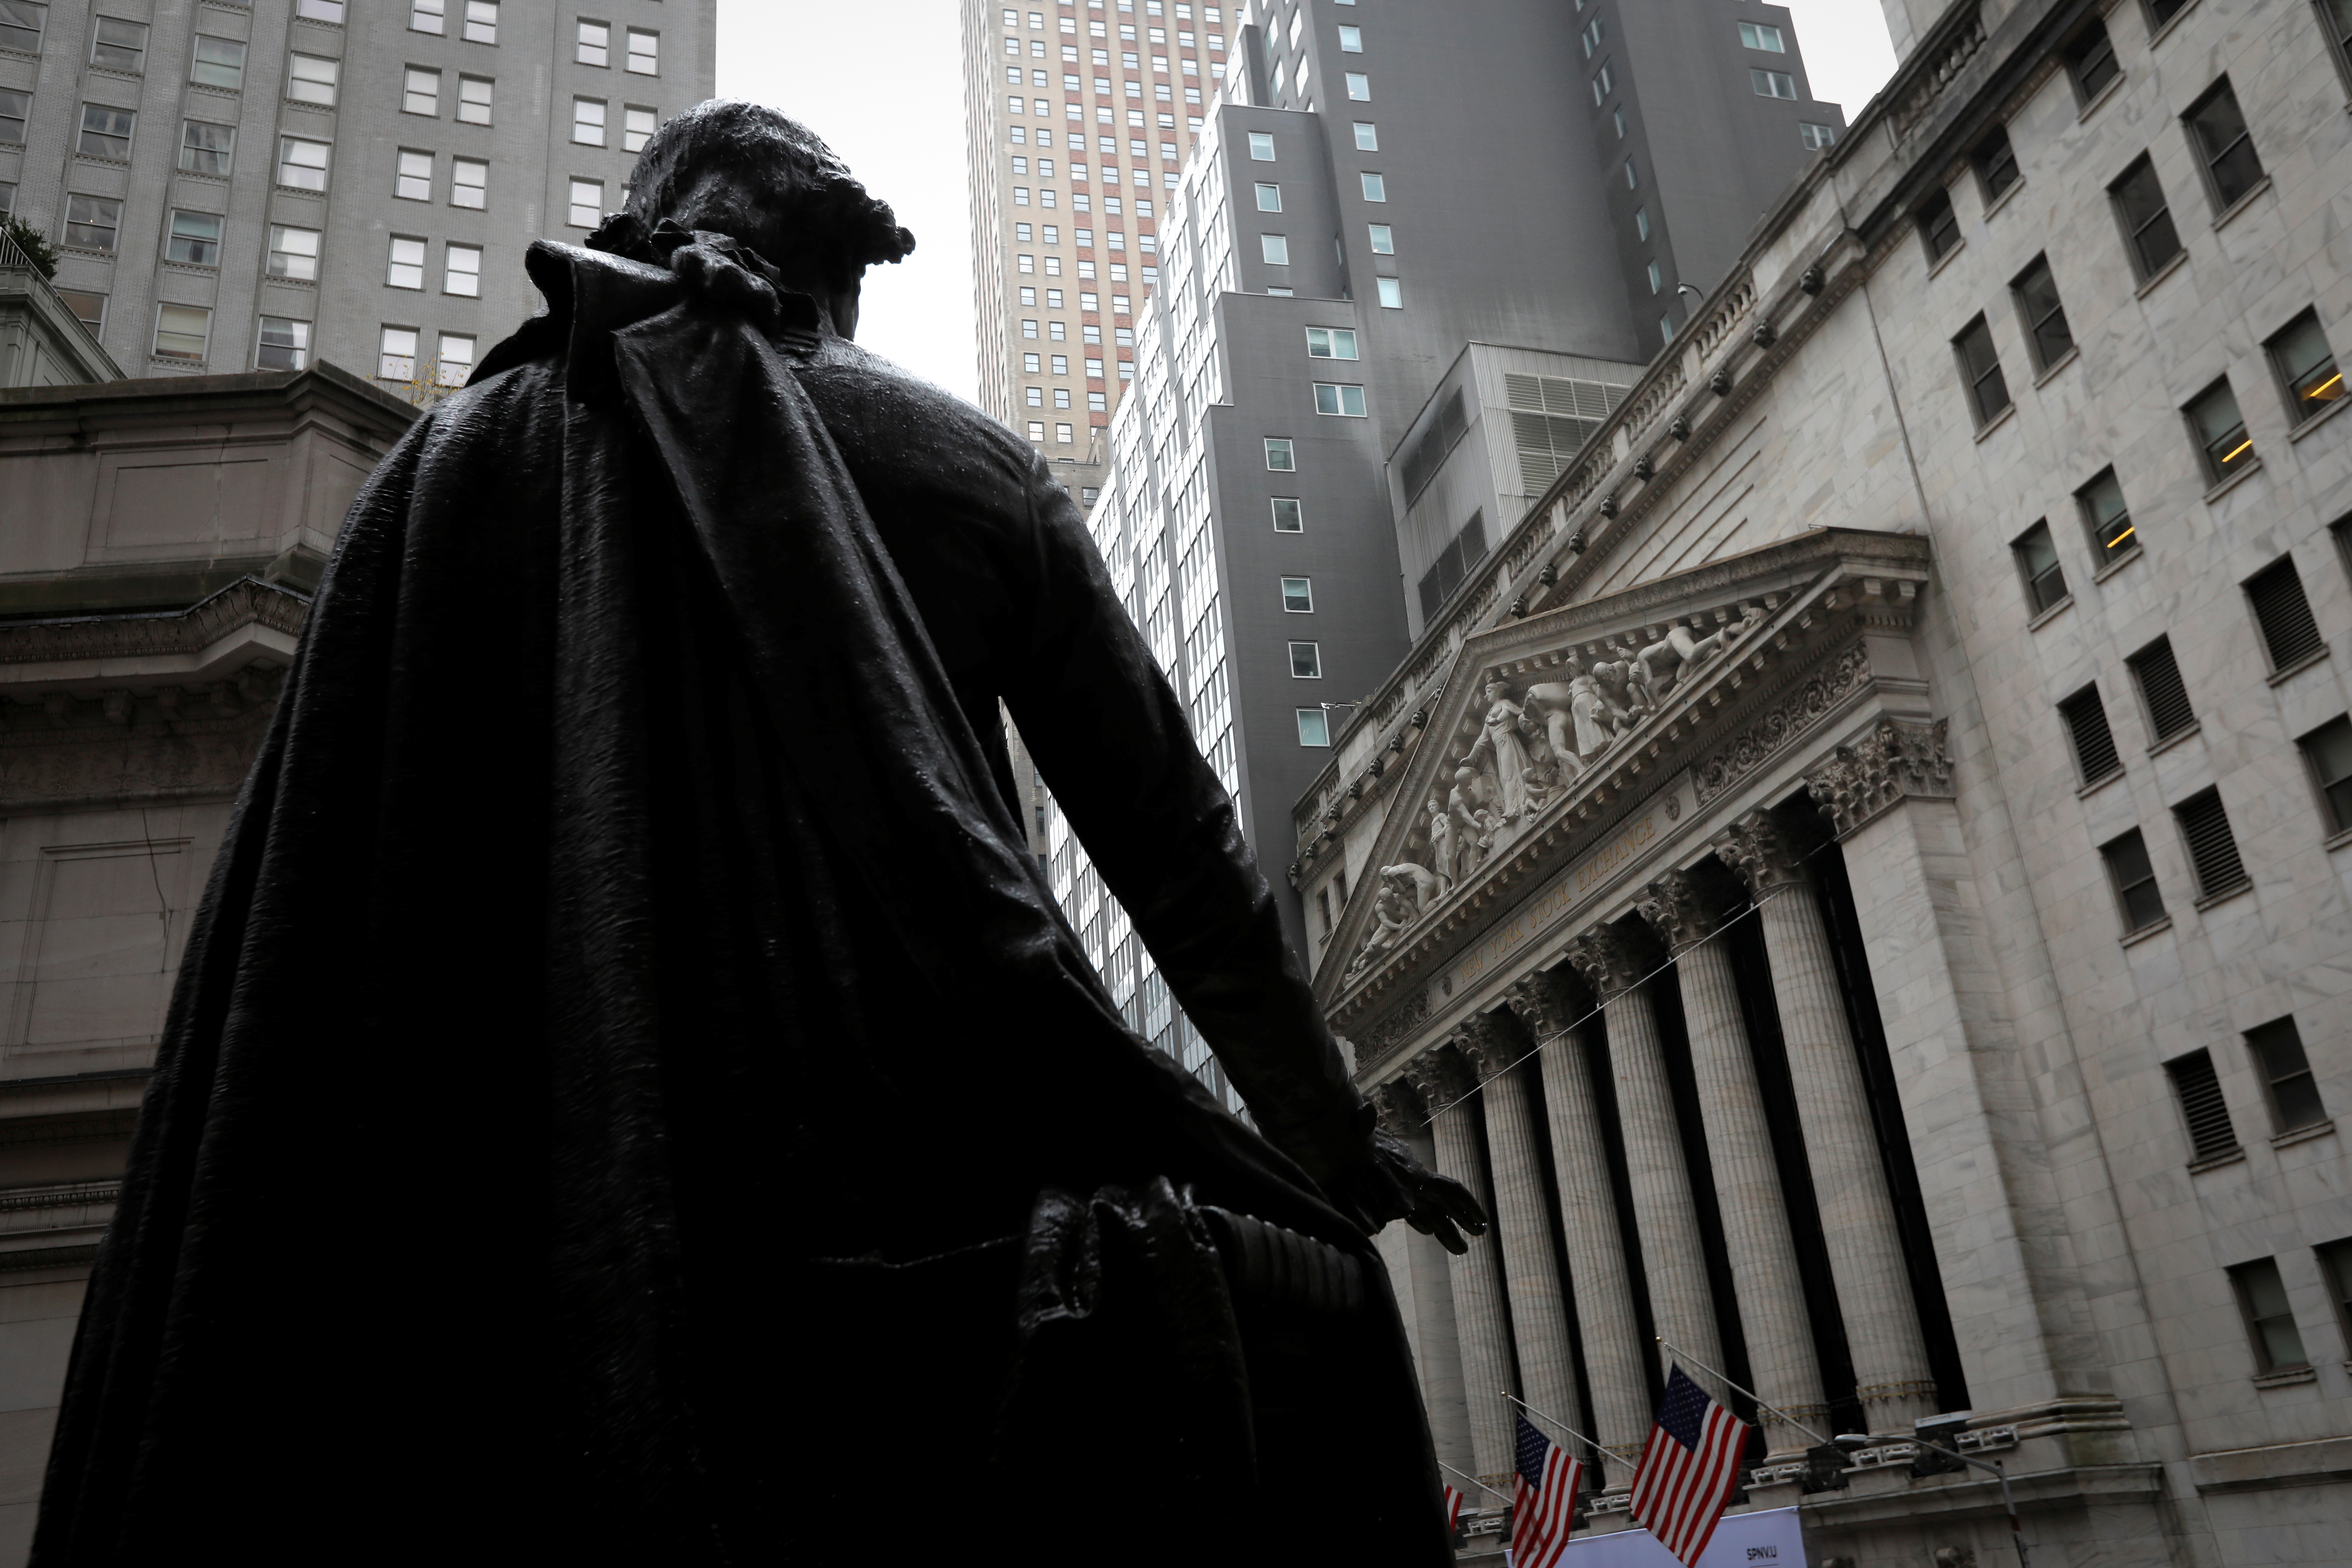 A statue of George Washington stands at Federal Hall across Wall Street from the New York Stock Exchange in New York City. REUTERS/Mike Segar